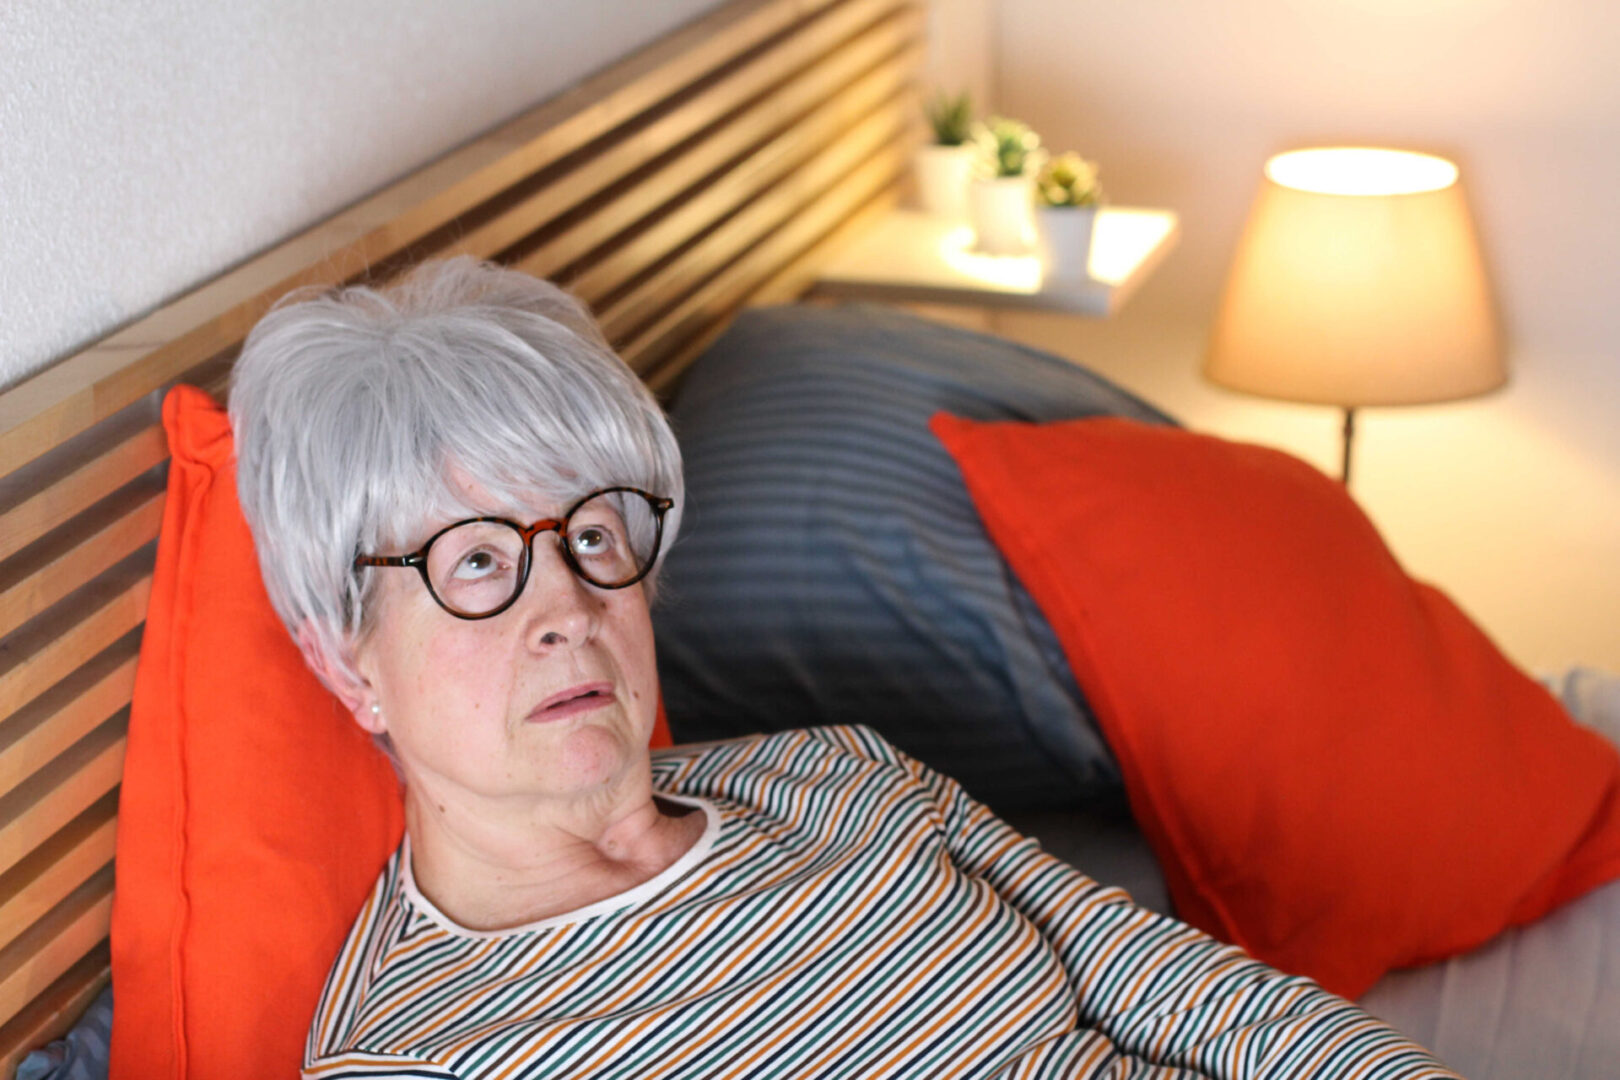 Woman with Gray hair and glasses lying in bed and looking up at the sky as if in despair.